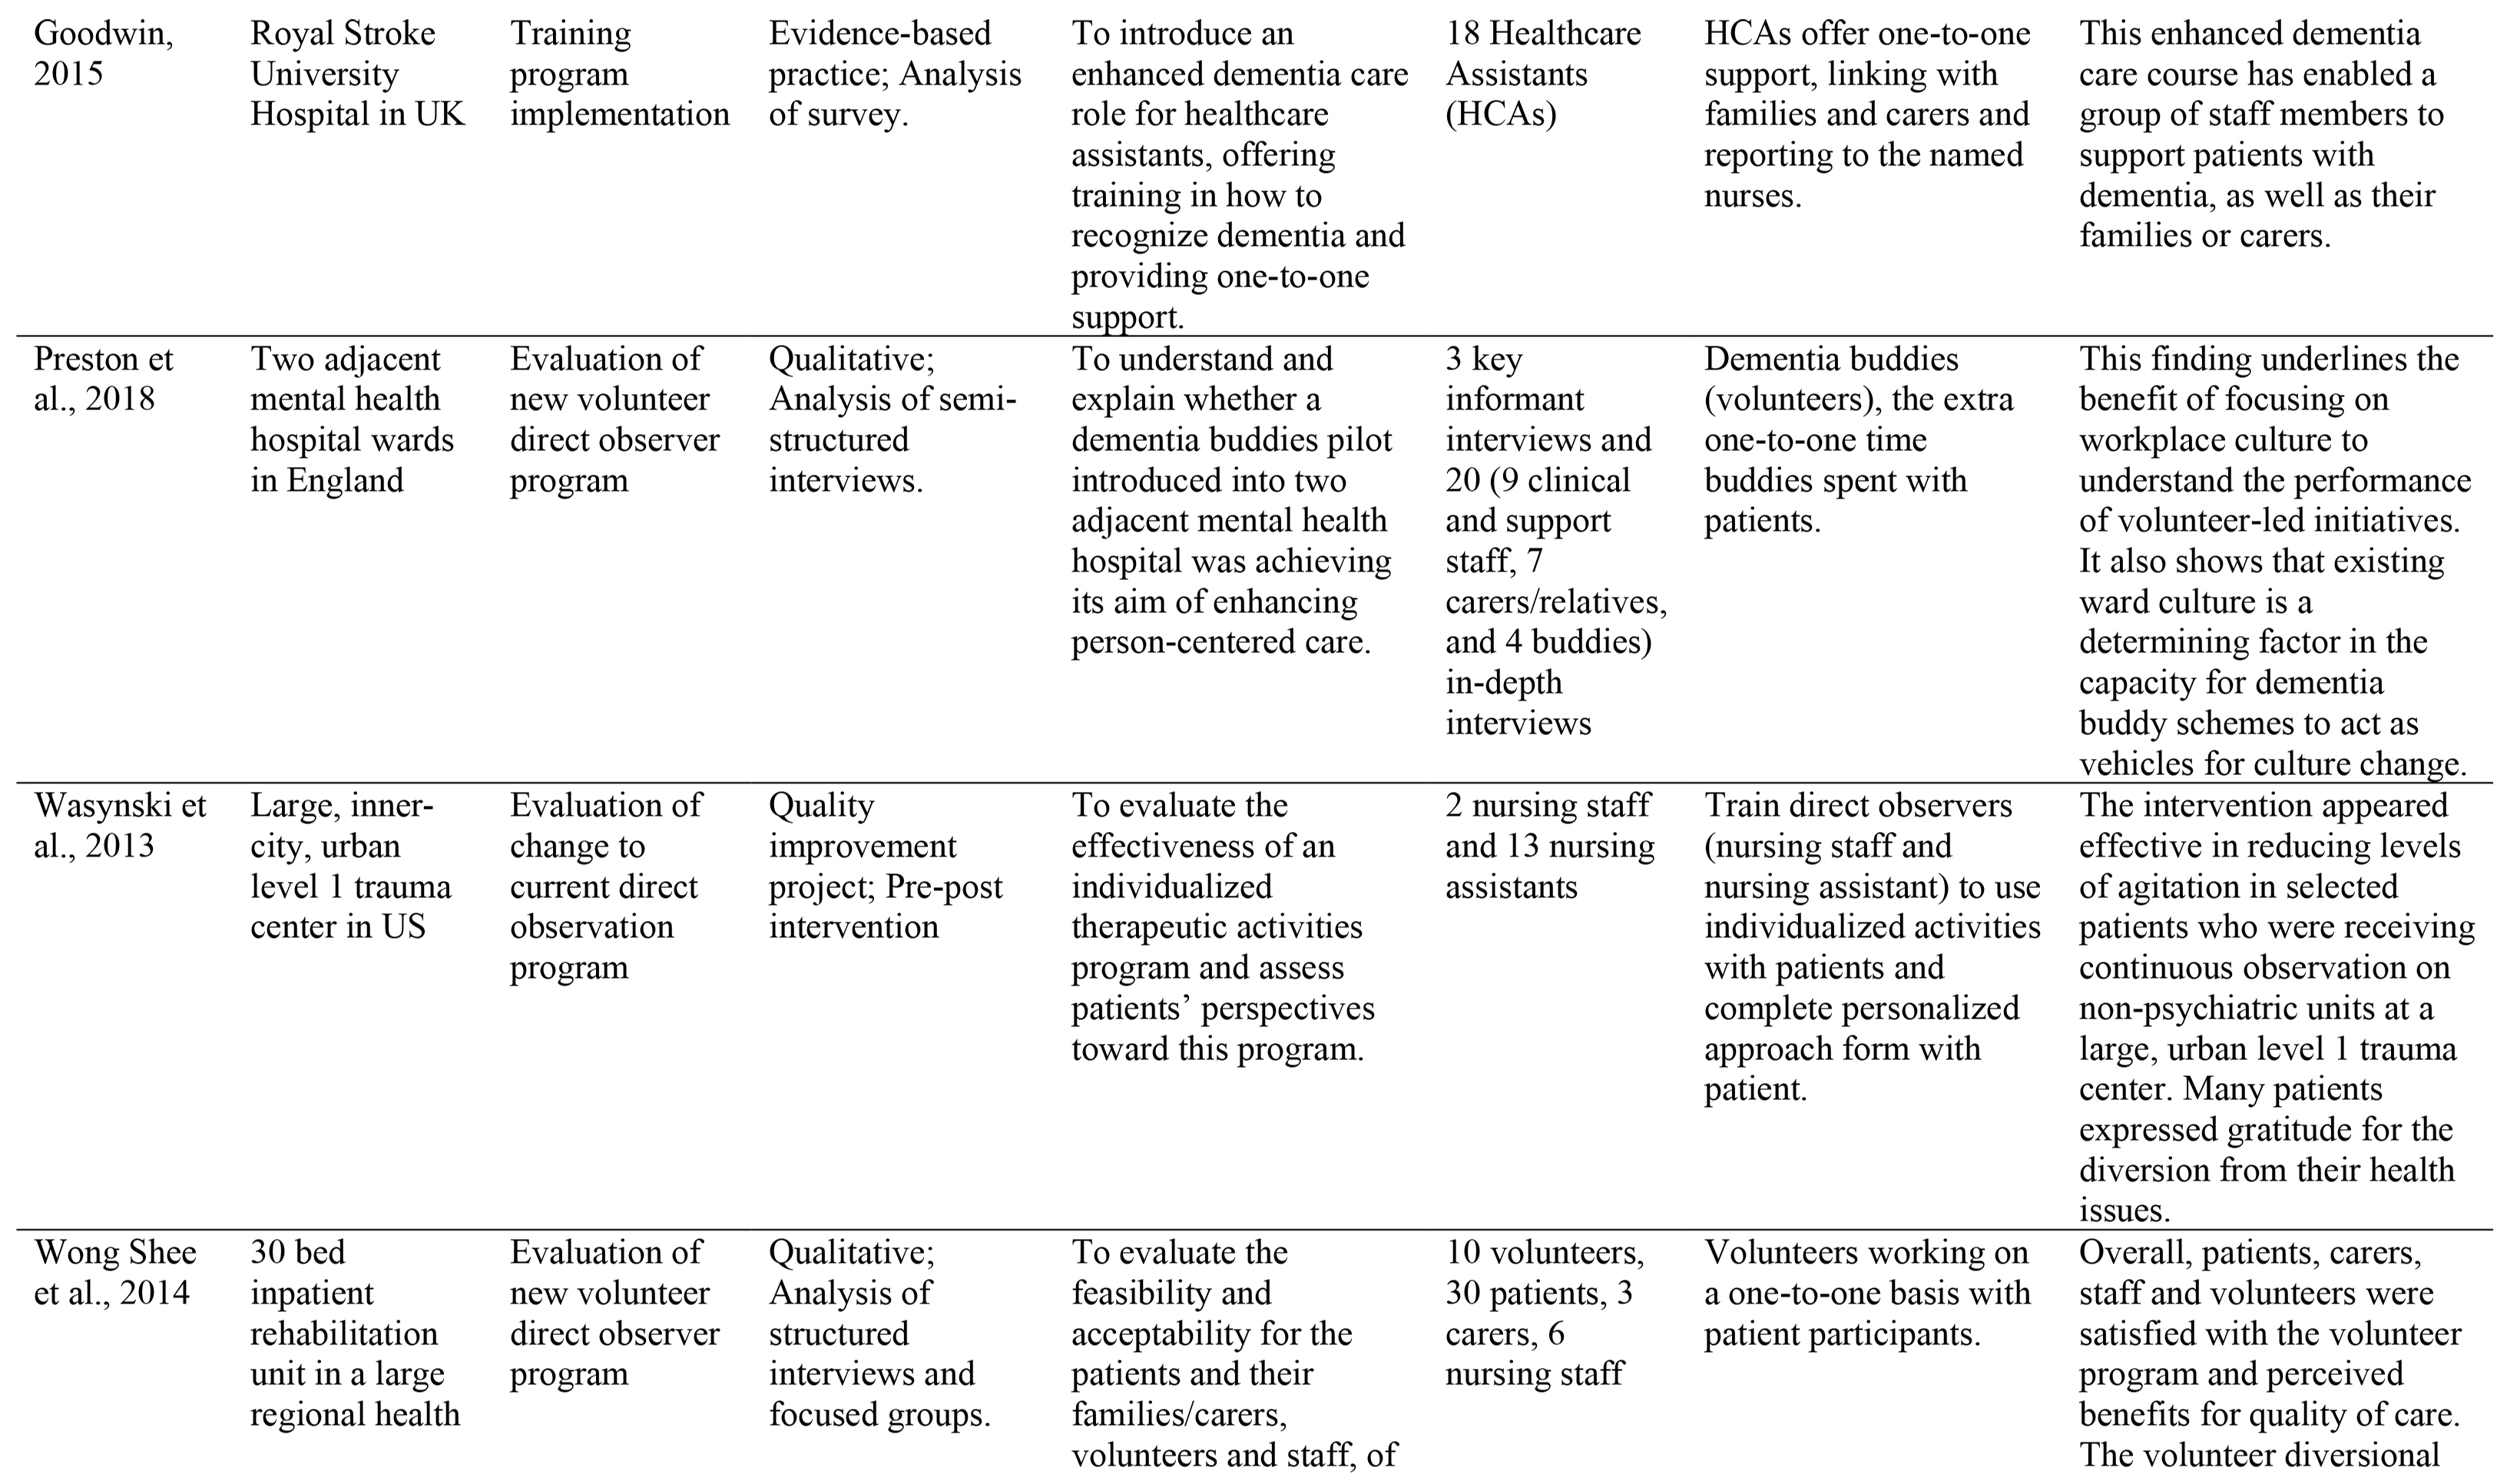 Characteristics of Included Studies.